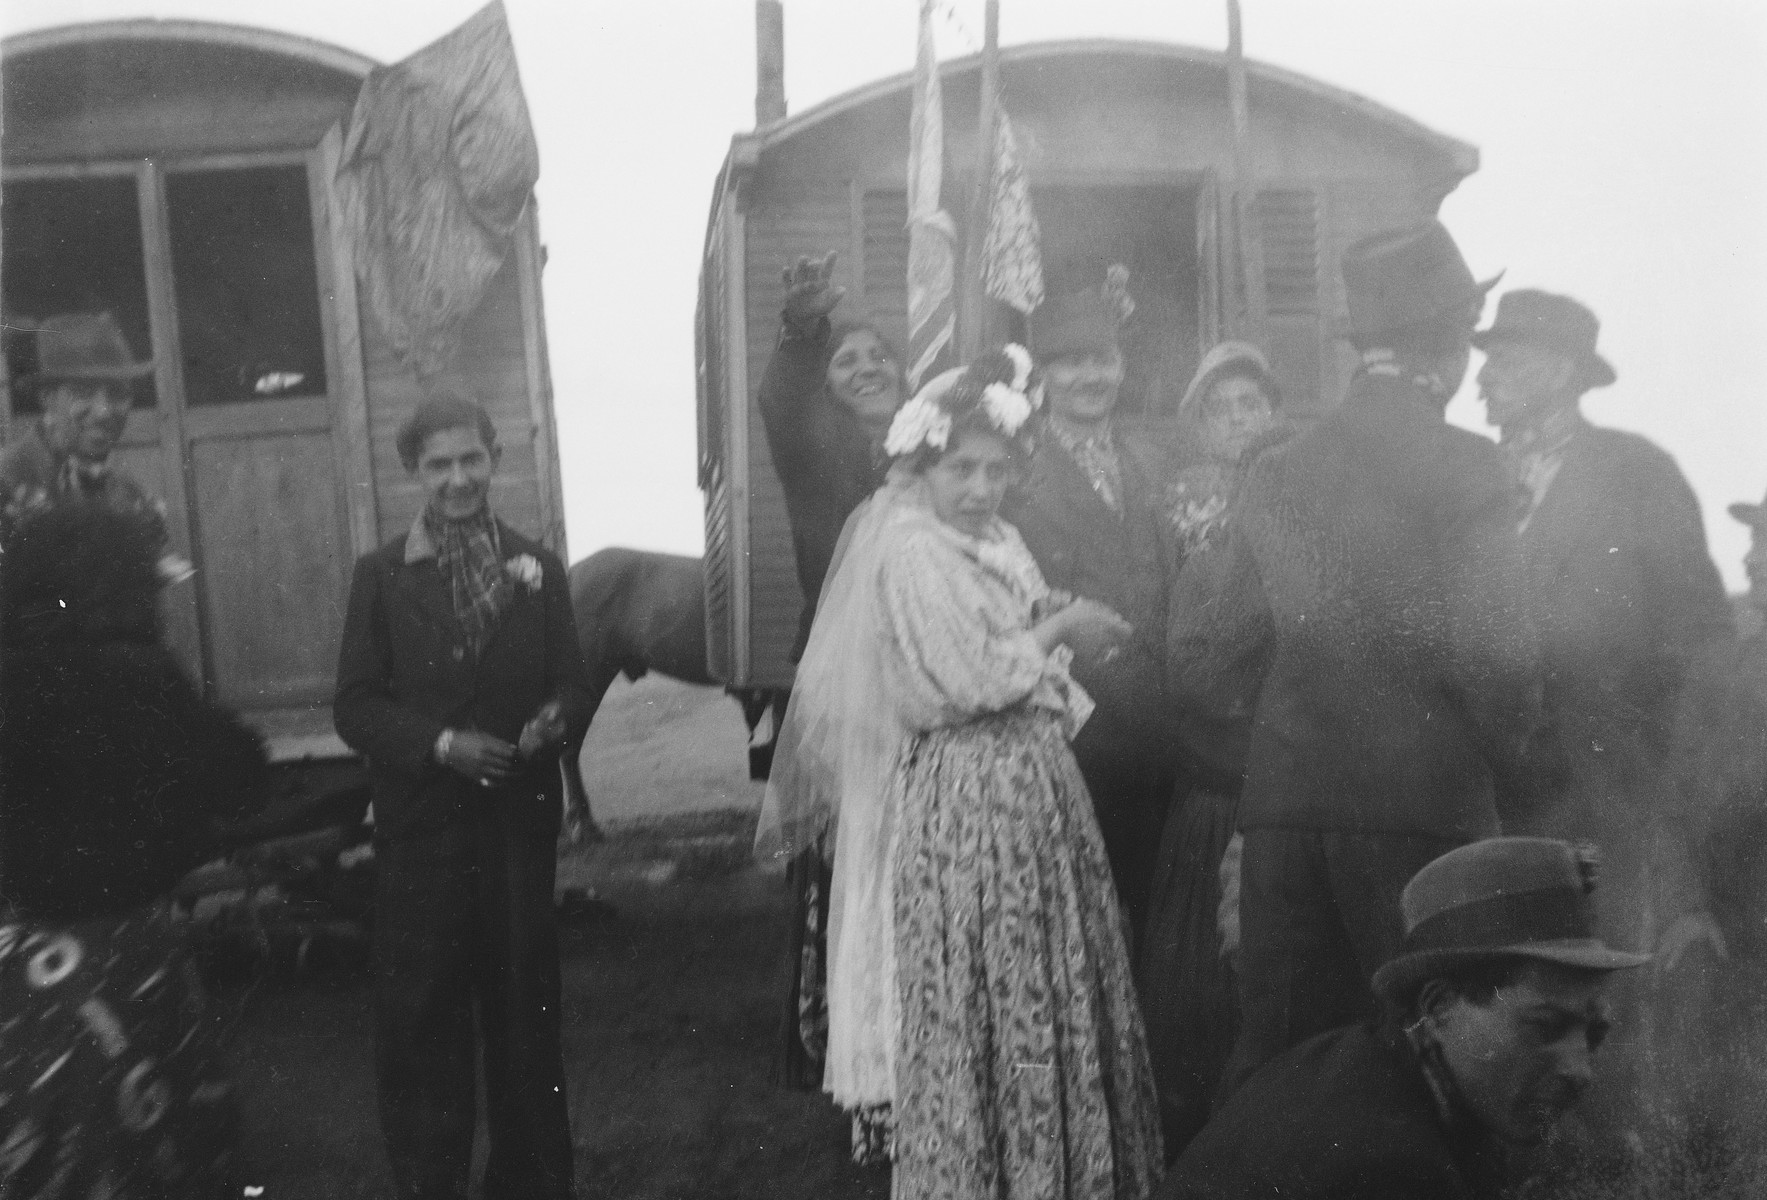 A Romani (Gypsy) woman wearing a long white veil poses with a group in a front of caravans decorated with flags and banners (possibly a wedding).